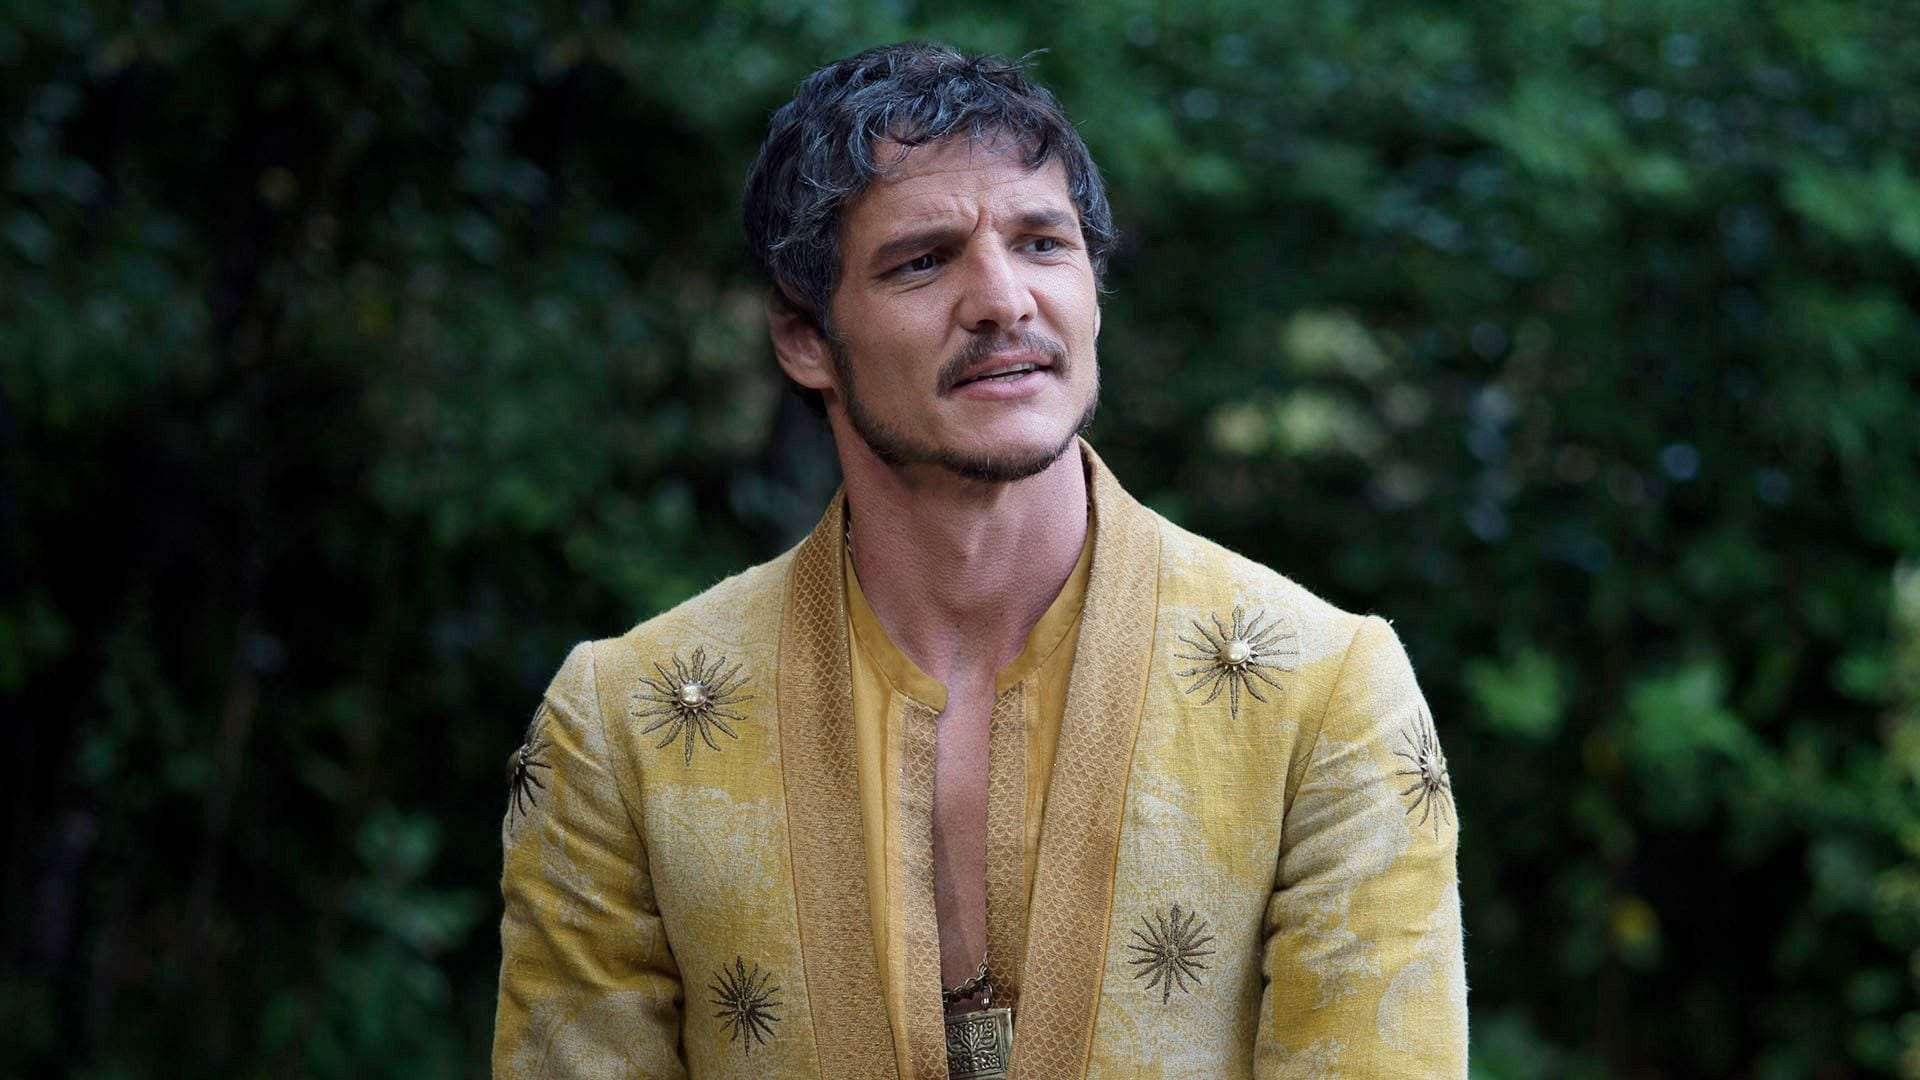 Pedro Pascal als Oberyn Martell  Game of Thrones